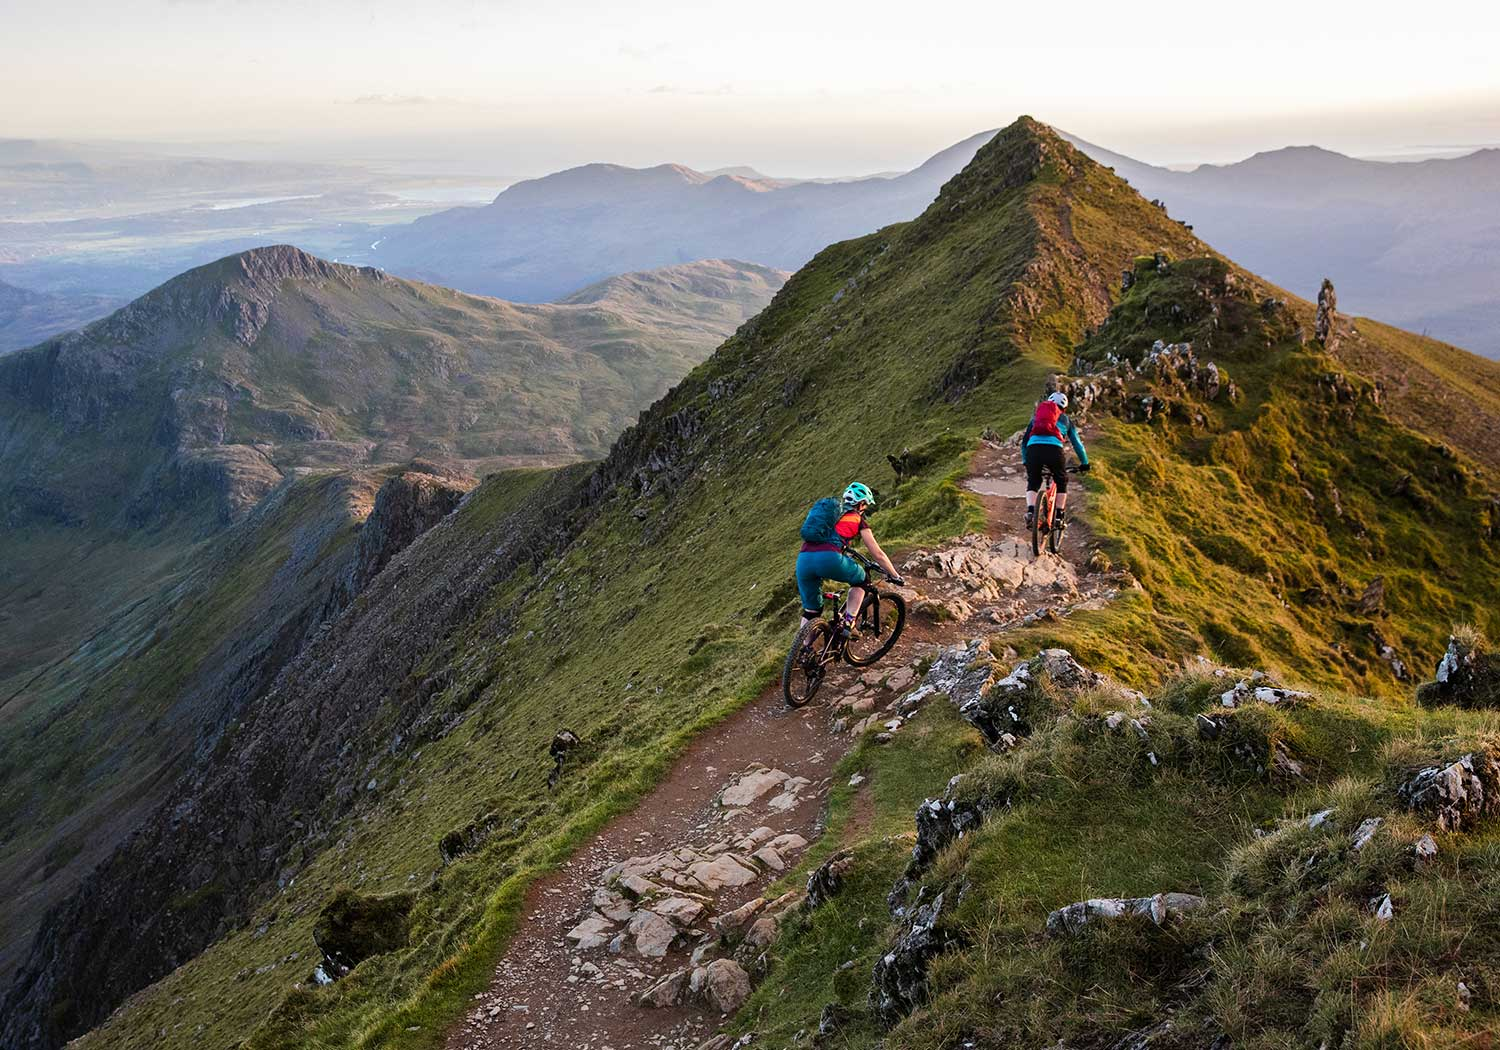 Mountain bike trail in Snowdonia, Wales